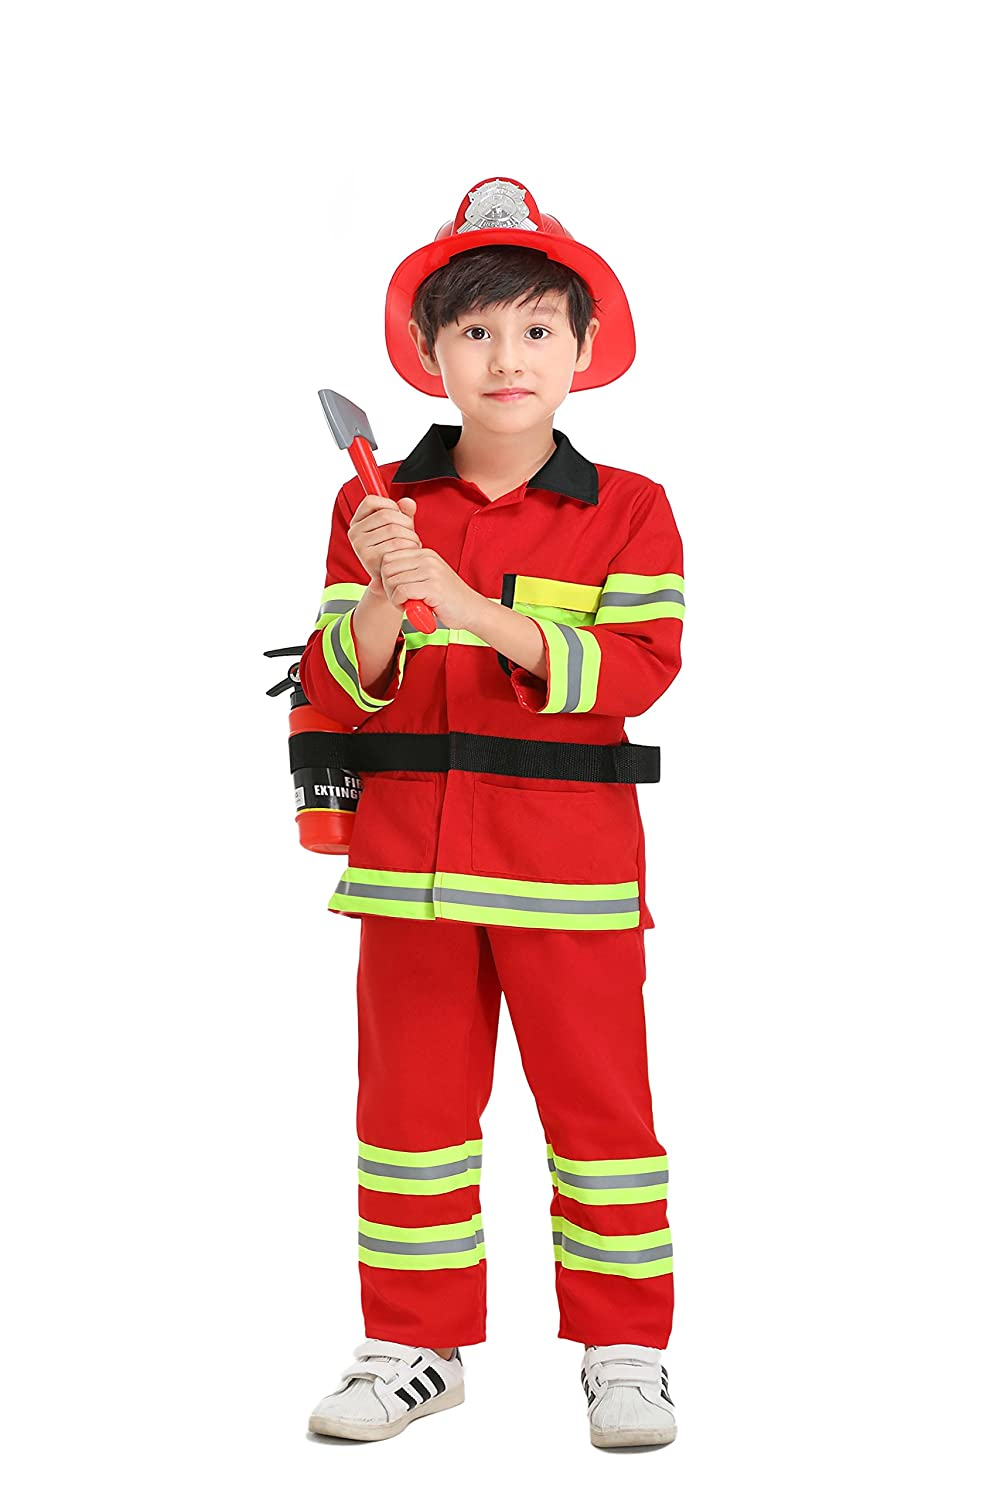 7e7e1839a6427 Amazon.com: yolsun Fireman Role Play Costume for Kids, Boys' and Girls' Firefighter  Dress up and Play Set (7 pcs): Clothing